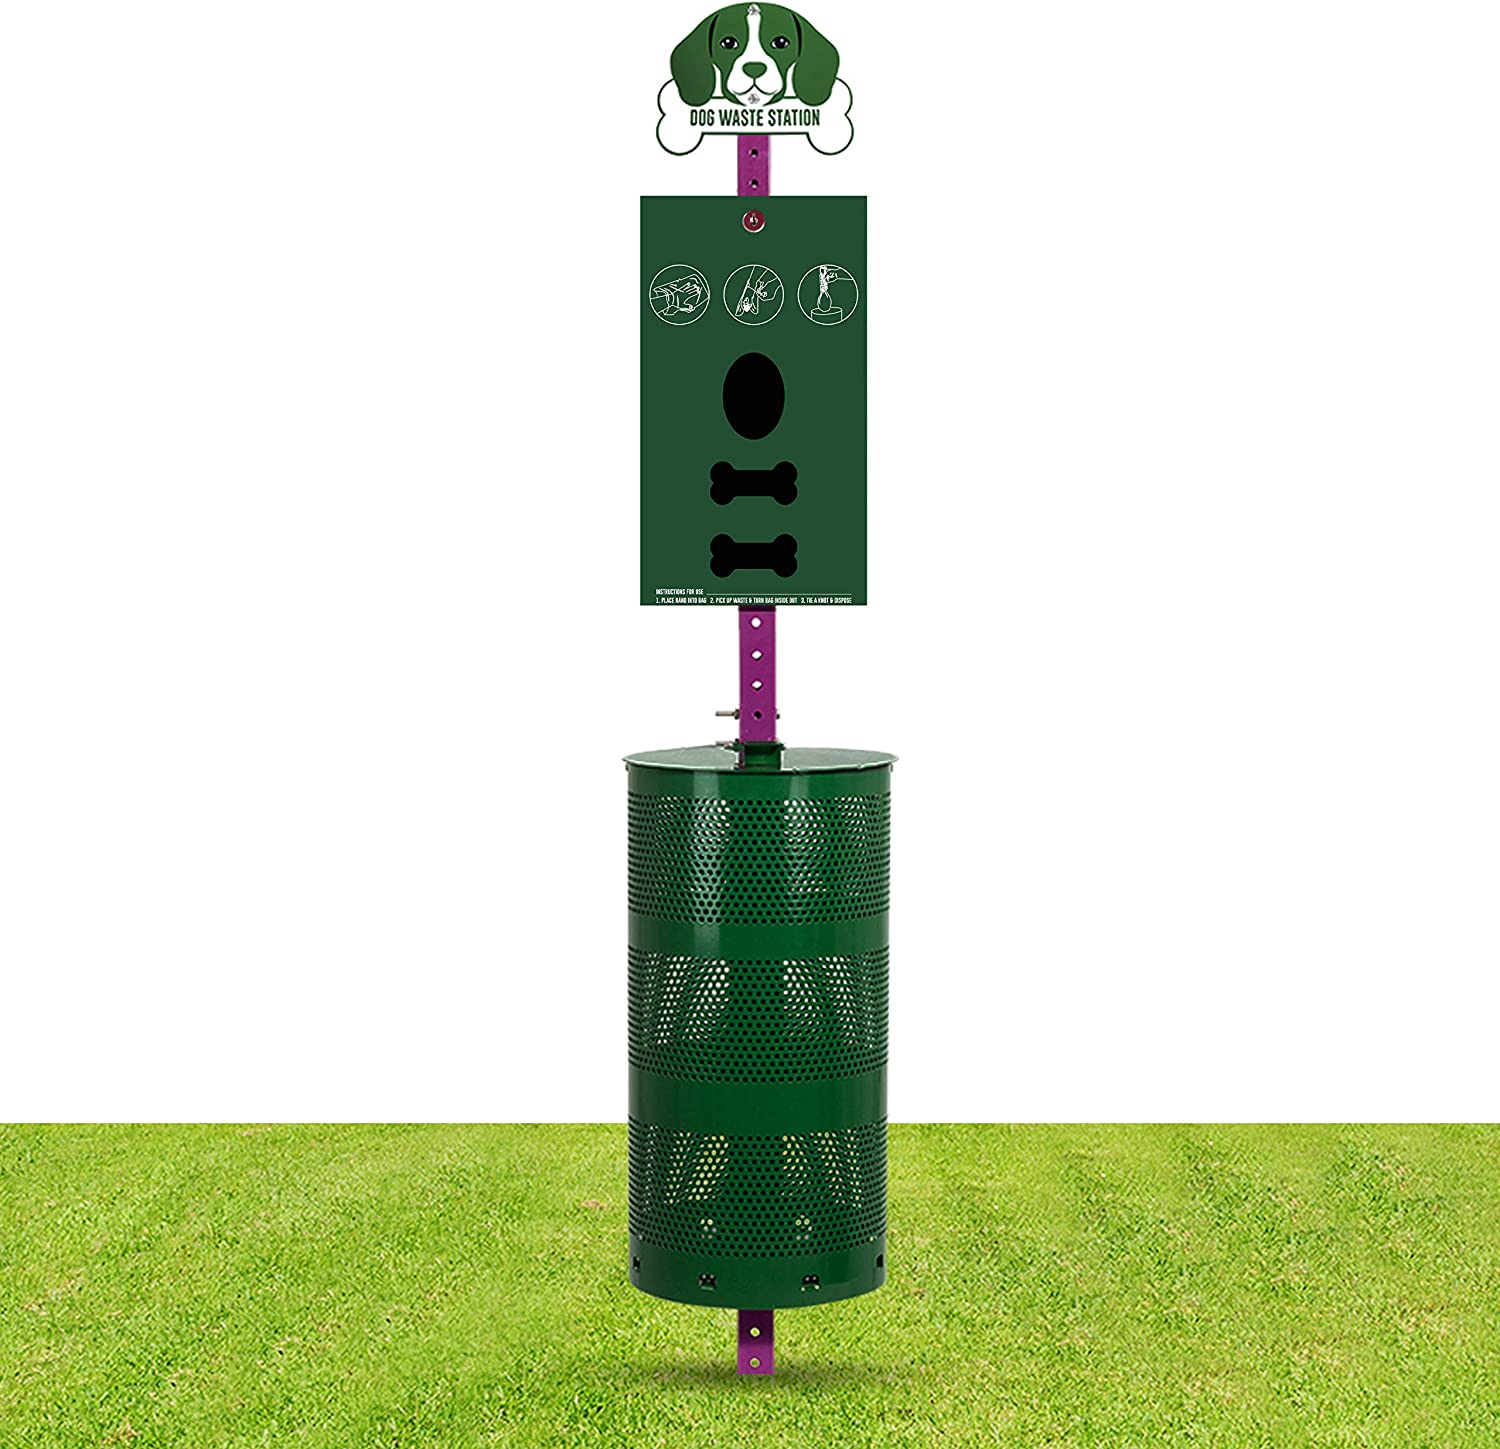 Dog Waste Station Pet Waste Station with Sign Board Dual Bag Dispenser Large Disposal Bin Rust Free 400 Roll Bags 400 Pull Bags 50 Can Liners Everything Included for Home Commercial Park Poop Stations